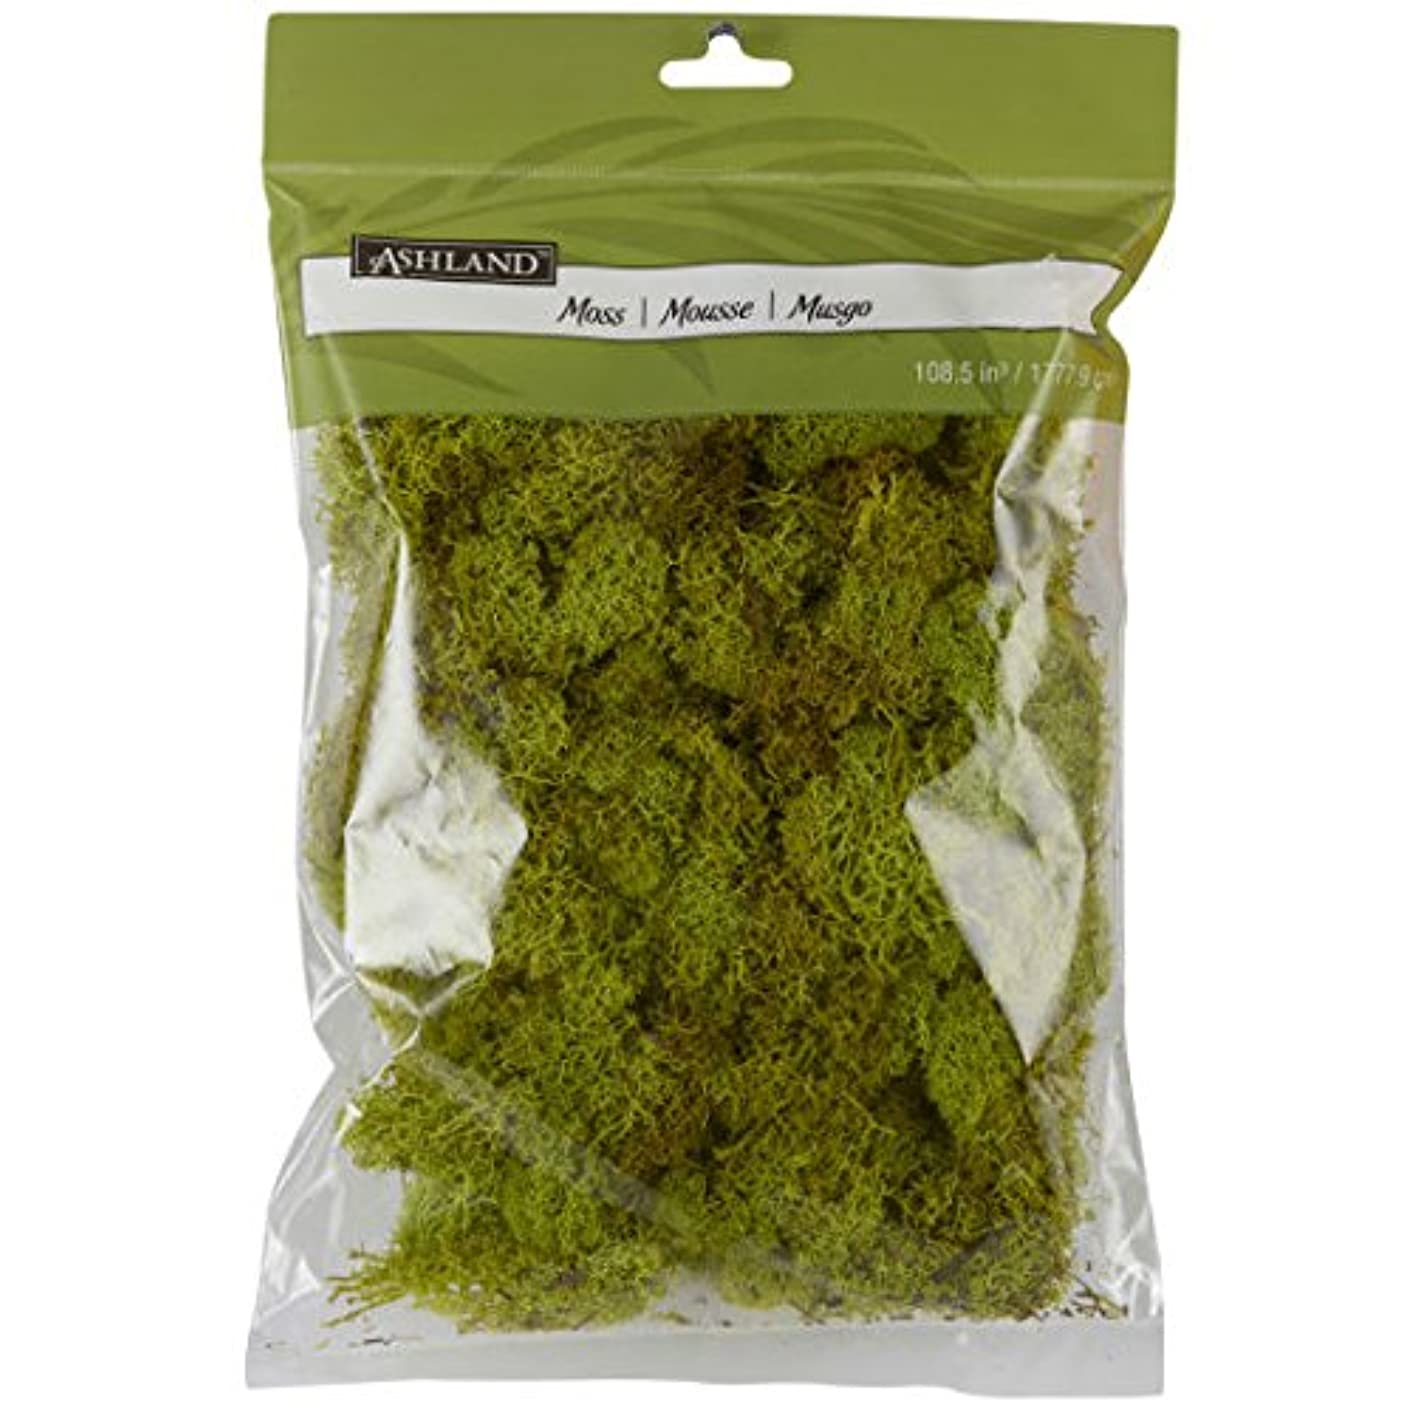 Reindeer Moss, 108.5 cu in in Chartreuse by Ashland